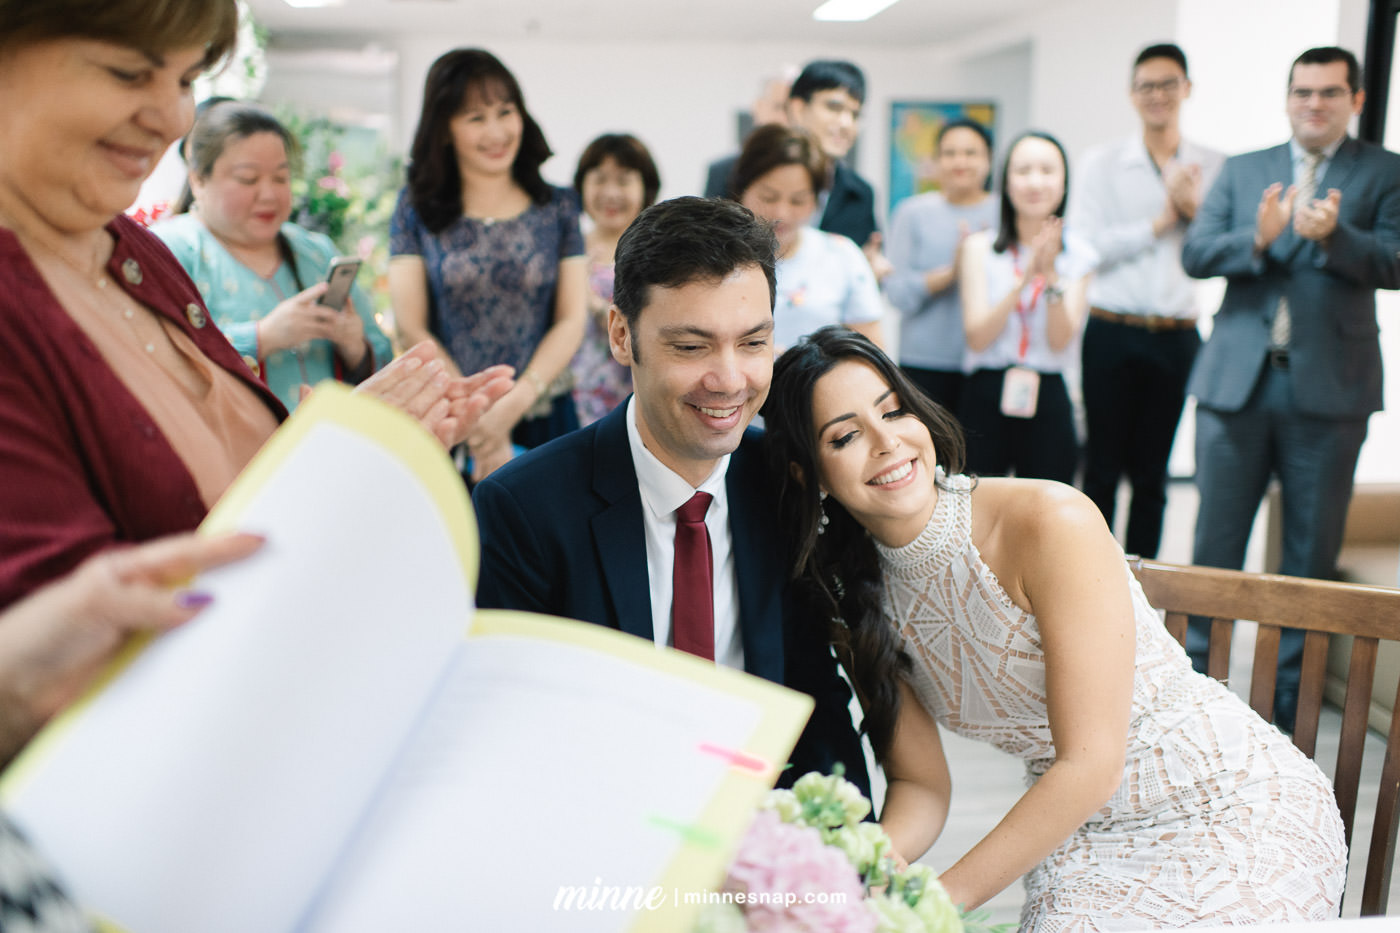 Marriage Registration in Thailand at Embassy of Brazil, Gabriela and Joao